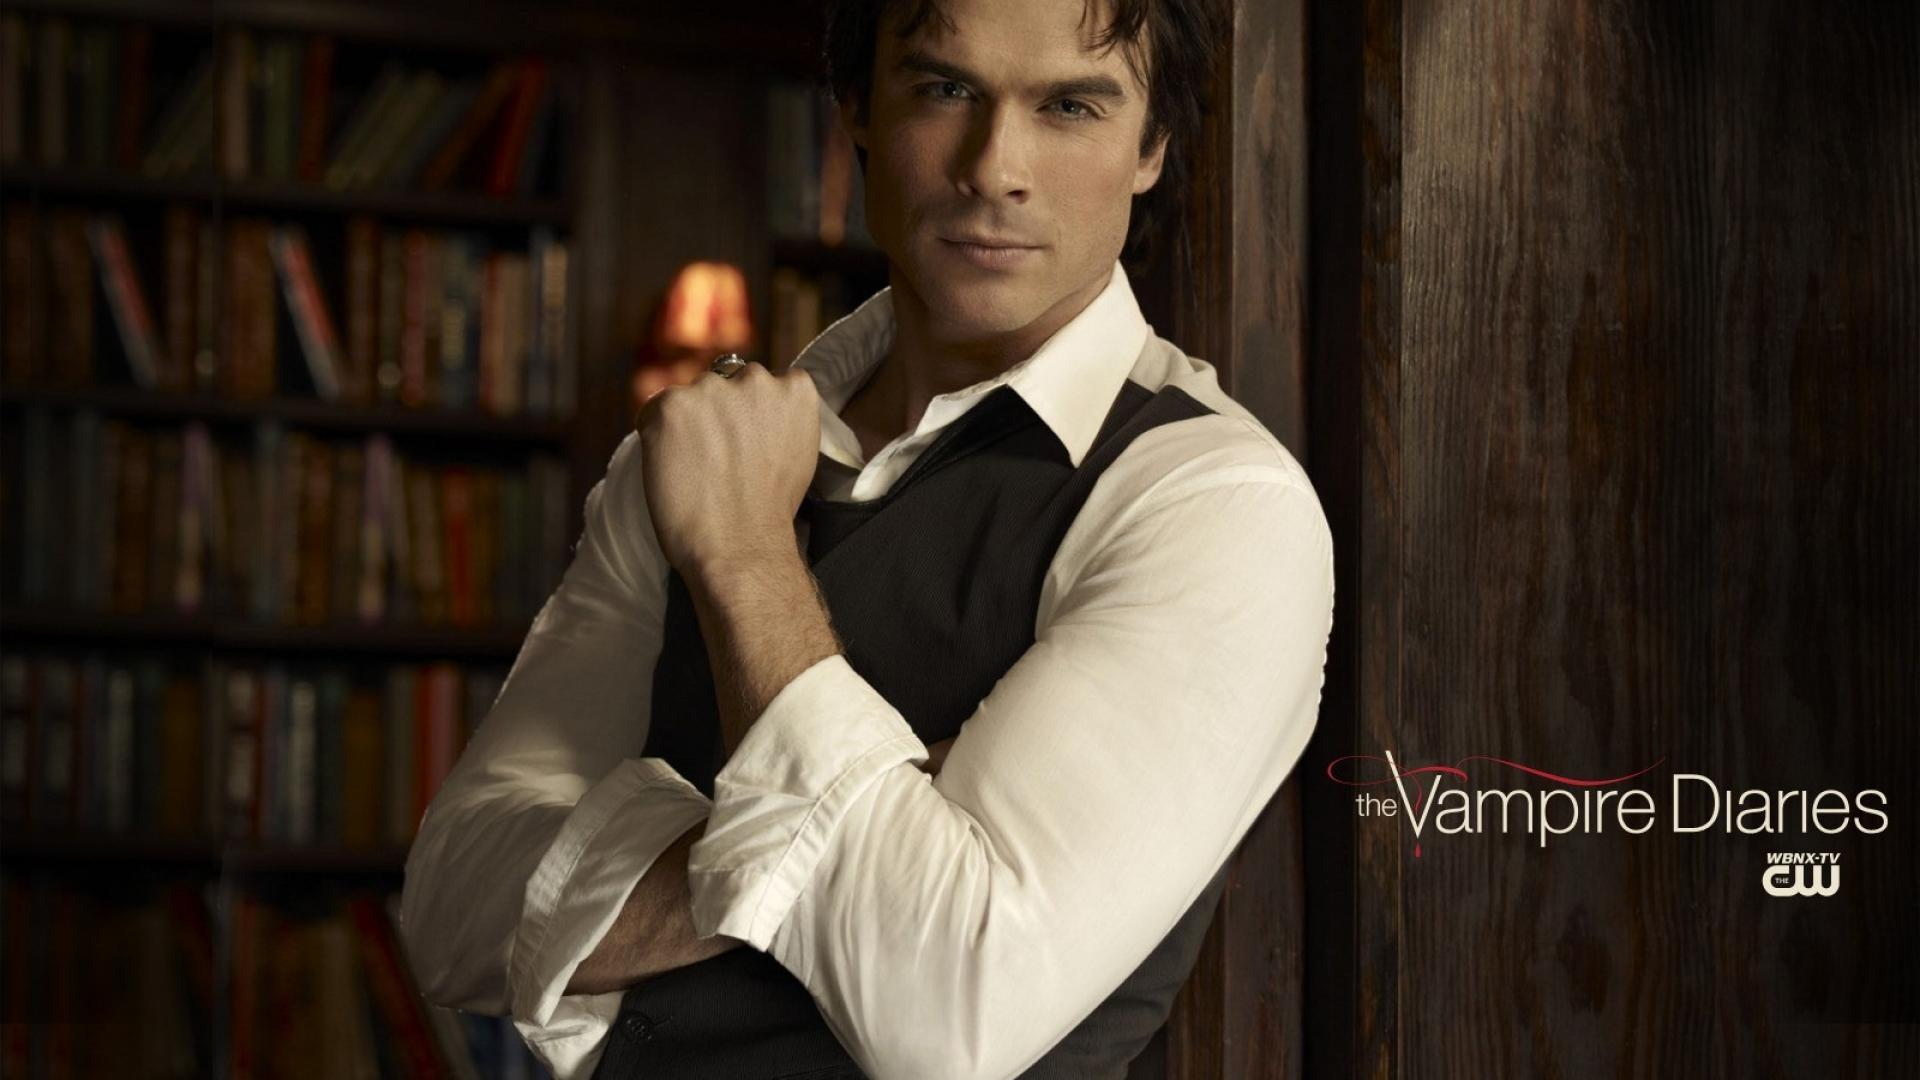 The vampire diaries ian somerhalder damon salvatore wallpapers